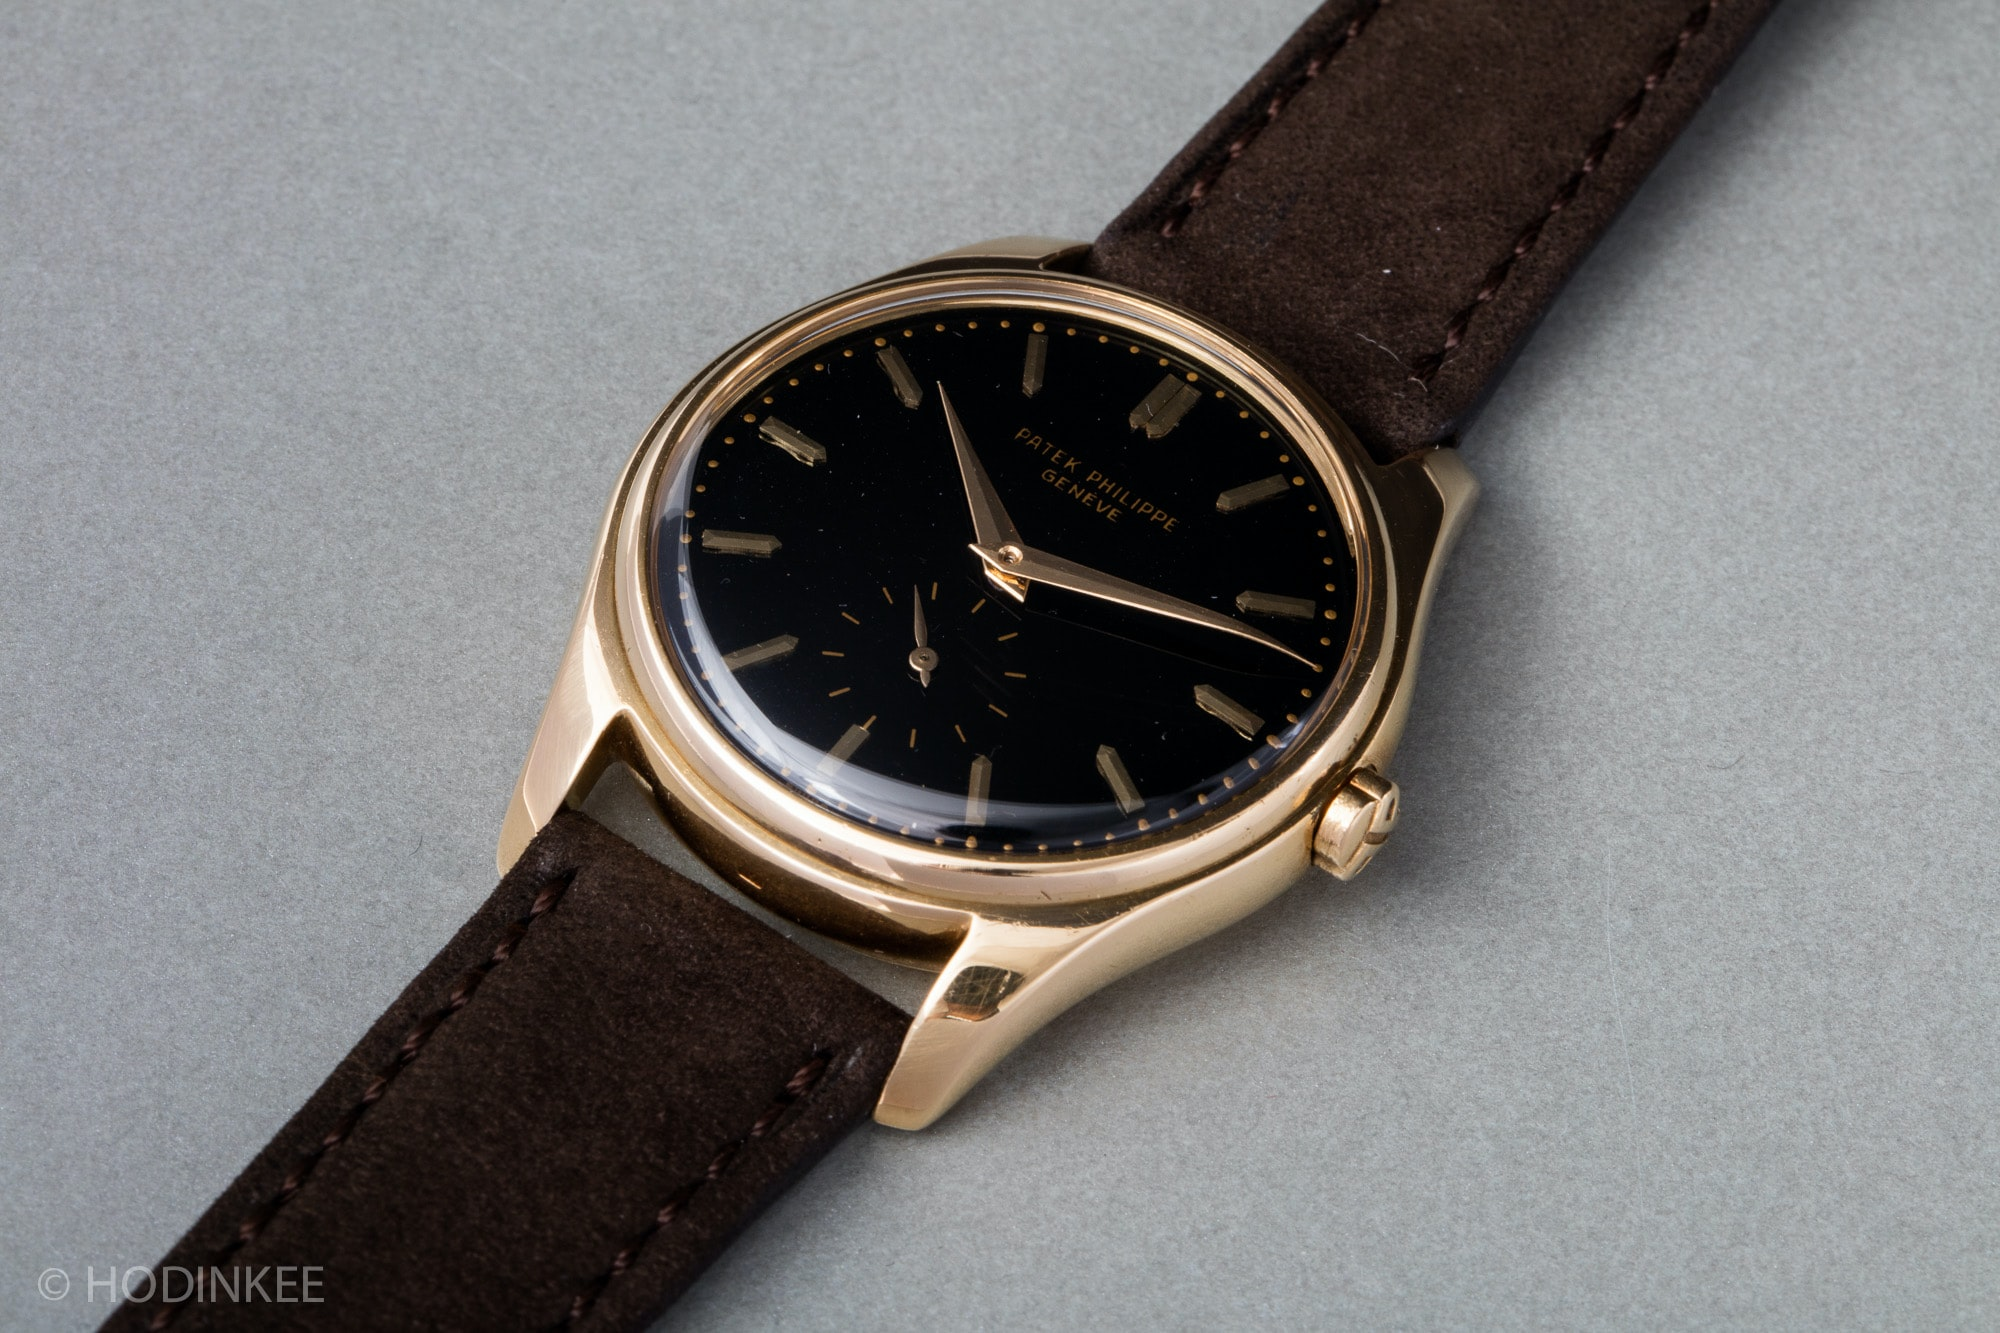 In-Depth: The Patek Philippe 2526, And Why It's A Watch To Pay Attention To In-Depth: The Patek Philippe 2526, And Why It's A Watch To Pay Attention To 2526caliber 89